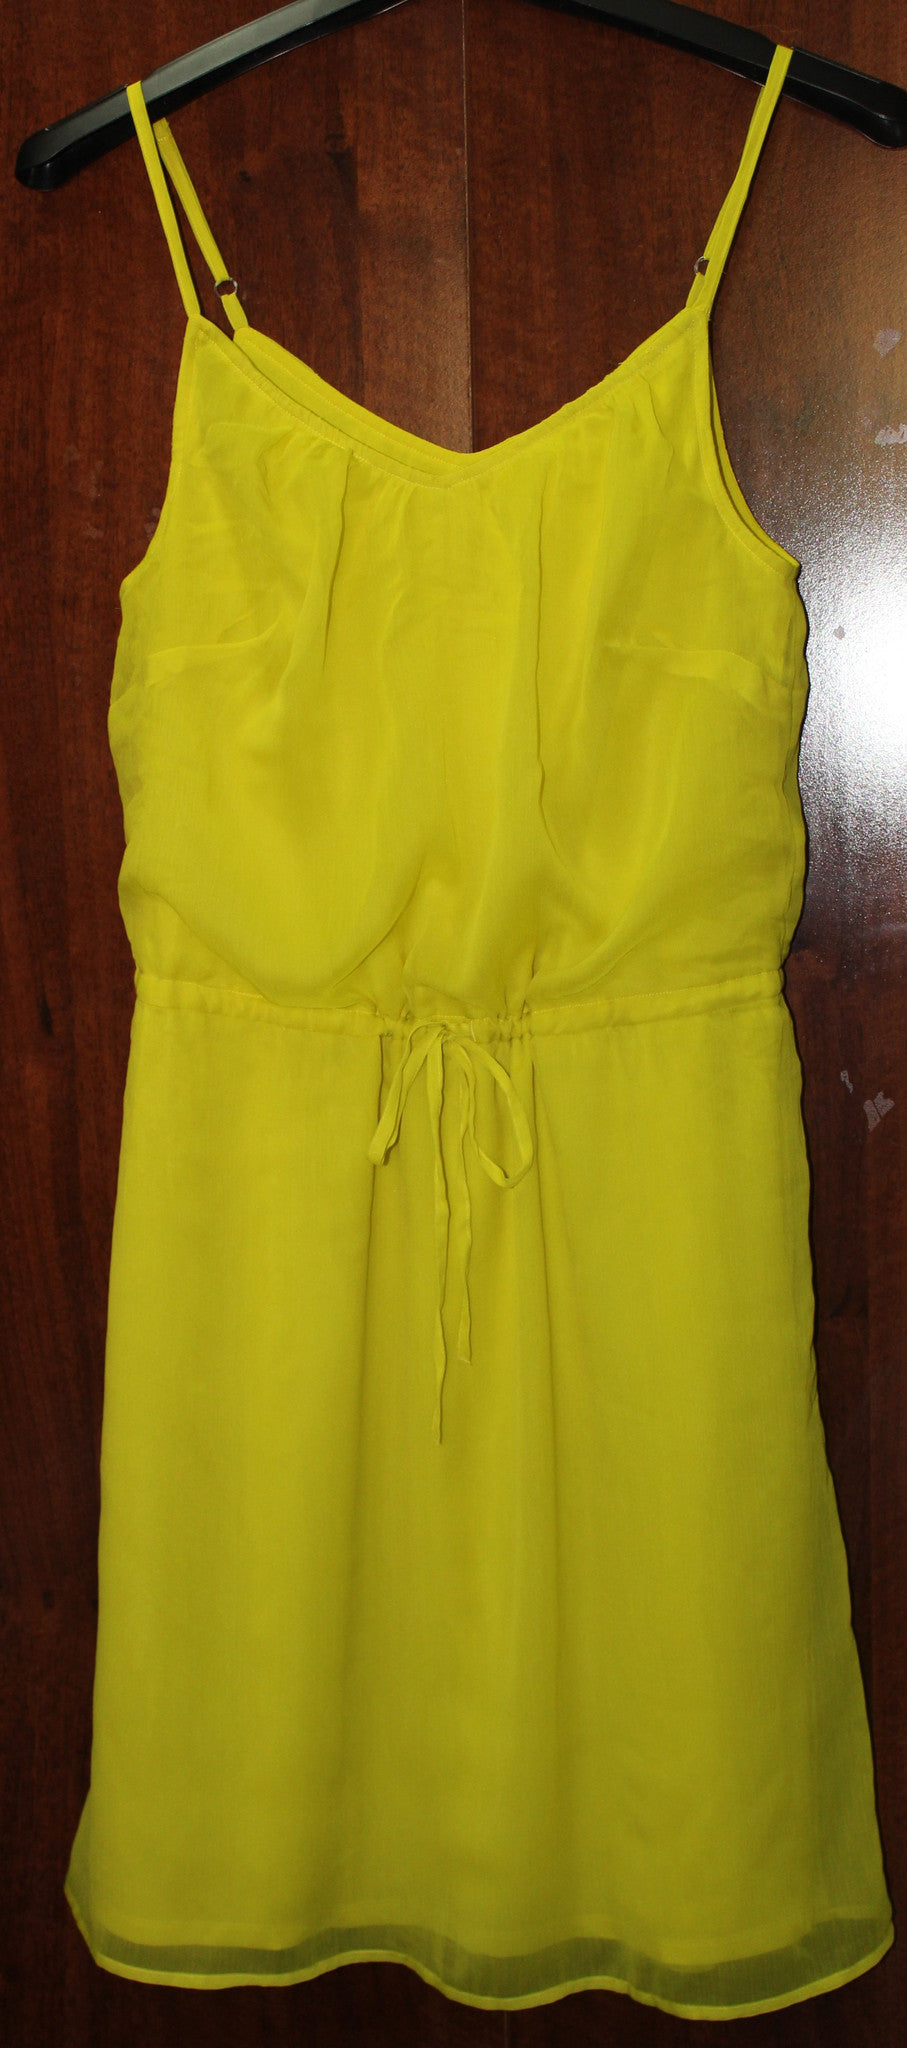 Super Soft, Lemon Yellow,All season dress - #FTFY - For The Fun Years